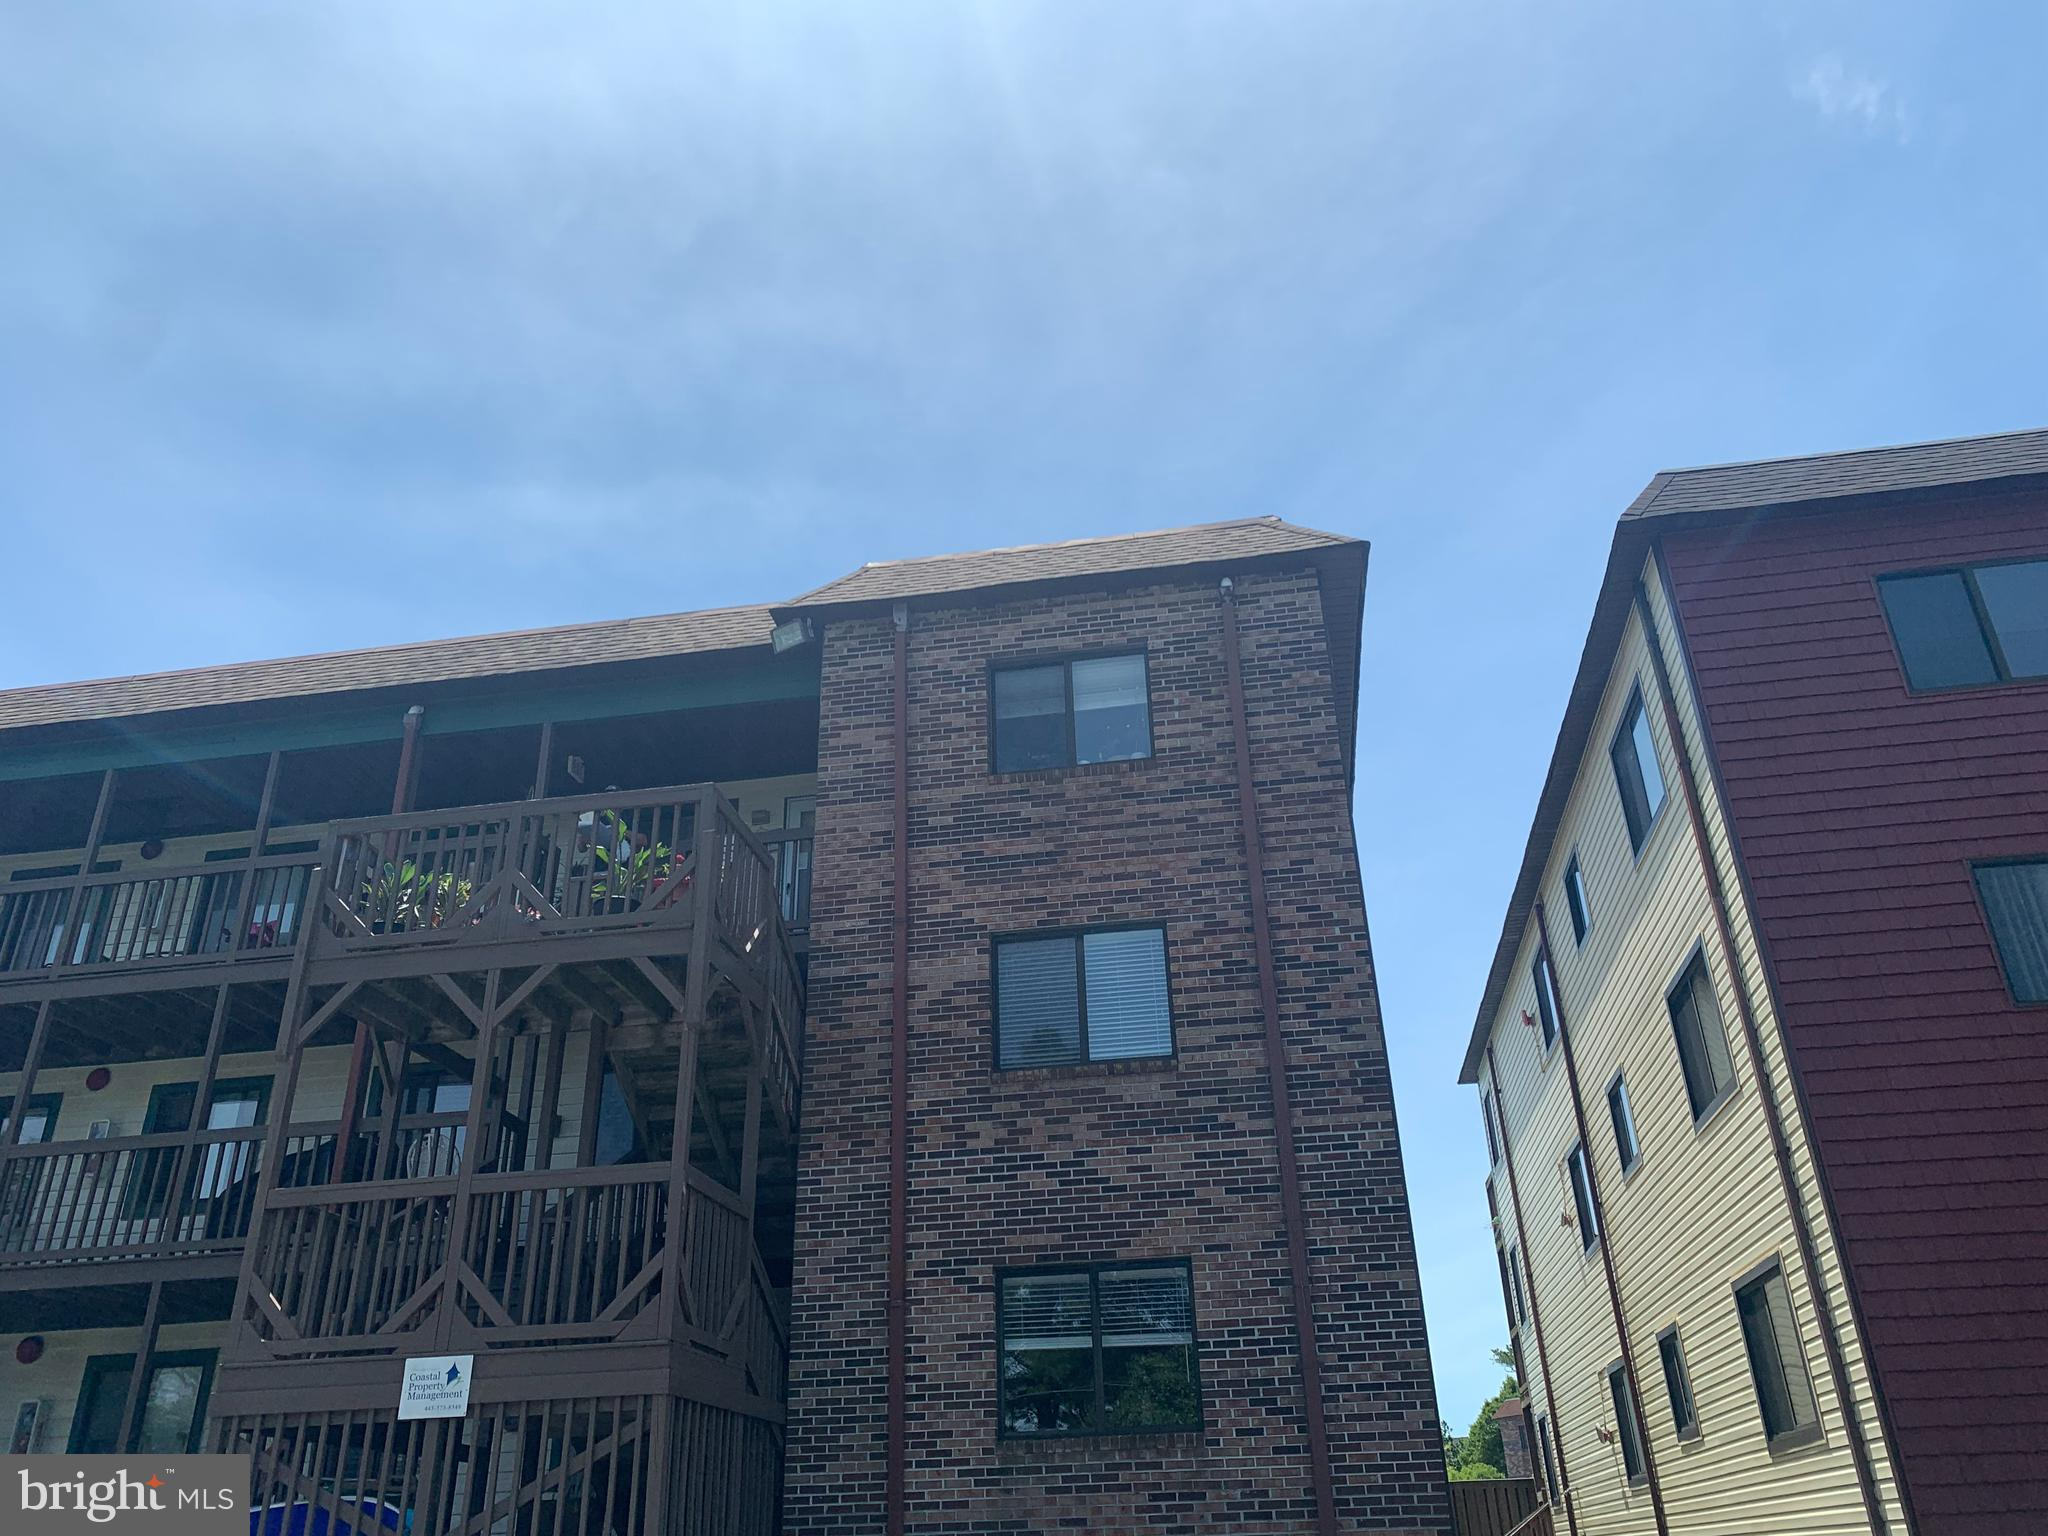 Come see this adorable and freshly painted and cleaned, 2 bedroom, 2 bath, end unit condo in Caine Woods with a community pool!  Check out all the natural light in this uptown condo.  Unit features newer HVAC (2017), porcelain flooring throughout (2014), new toilets  and vanities (2016),  washer and dryer (2019), stainless steal refrigerator (2016),  stainless steel dishwasher (2019),  and replacement doors in hall, closets and bedrooms.  Master bedroom deck overlooks the pool.  Balcony slider recently replaced.   Walk to many local restaurants.  Bring your bathing suits and beach gear and enjoy the end of summer and OC's second season!!!